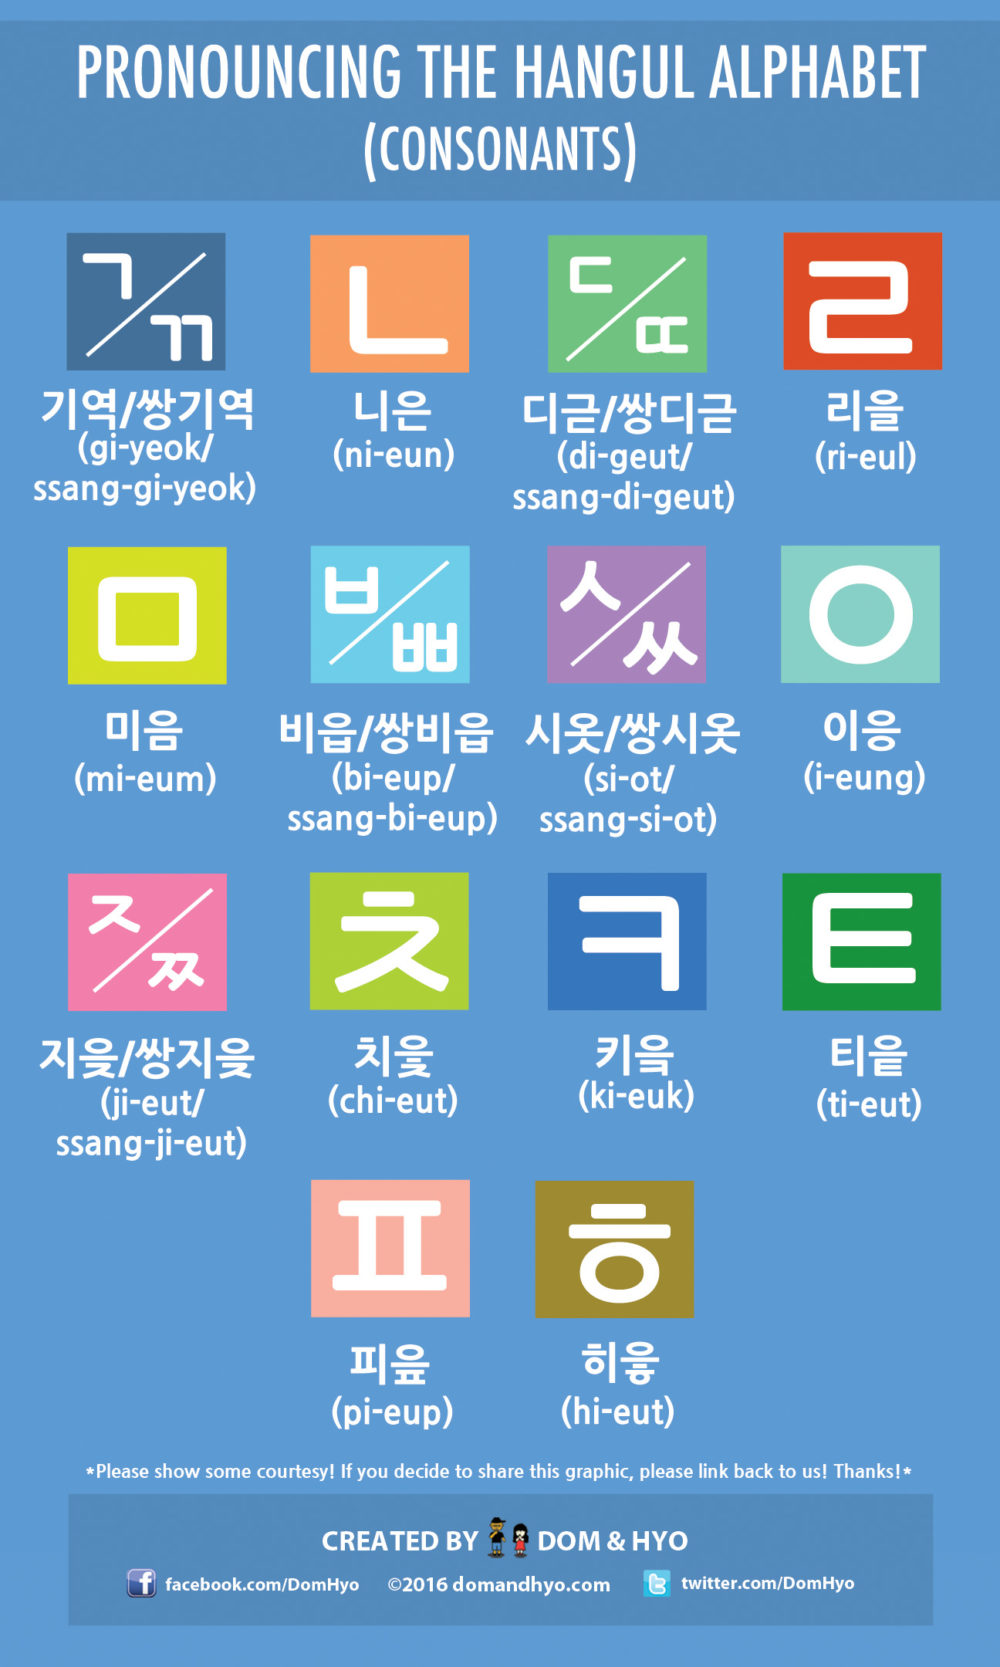 Korean Vocabulary: Pronouncing the Hangul Alphabet (Consonants)